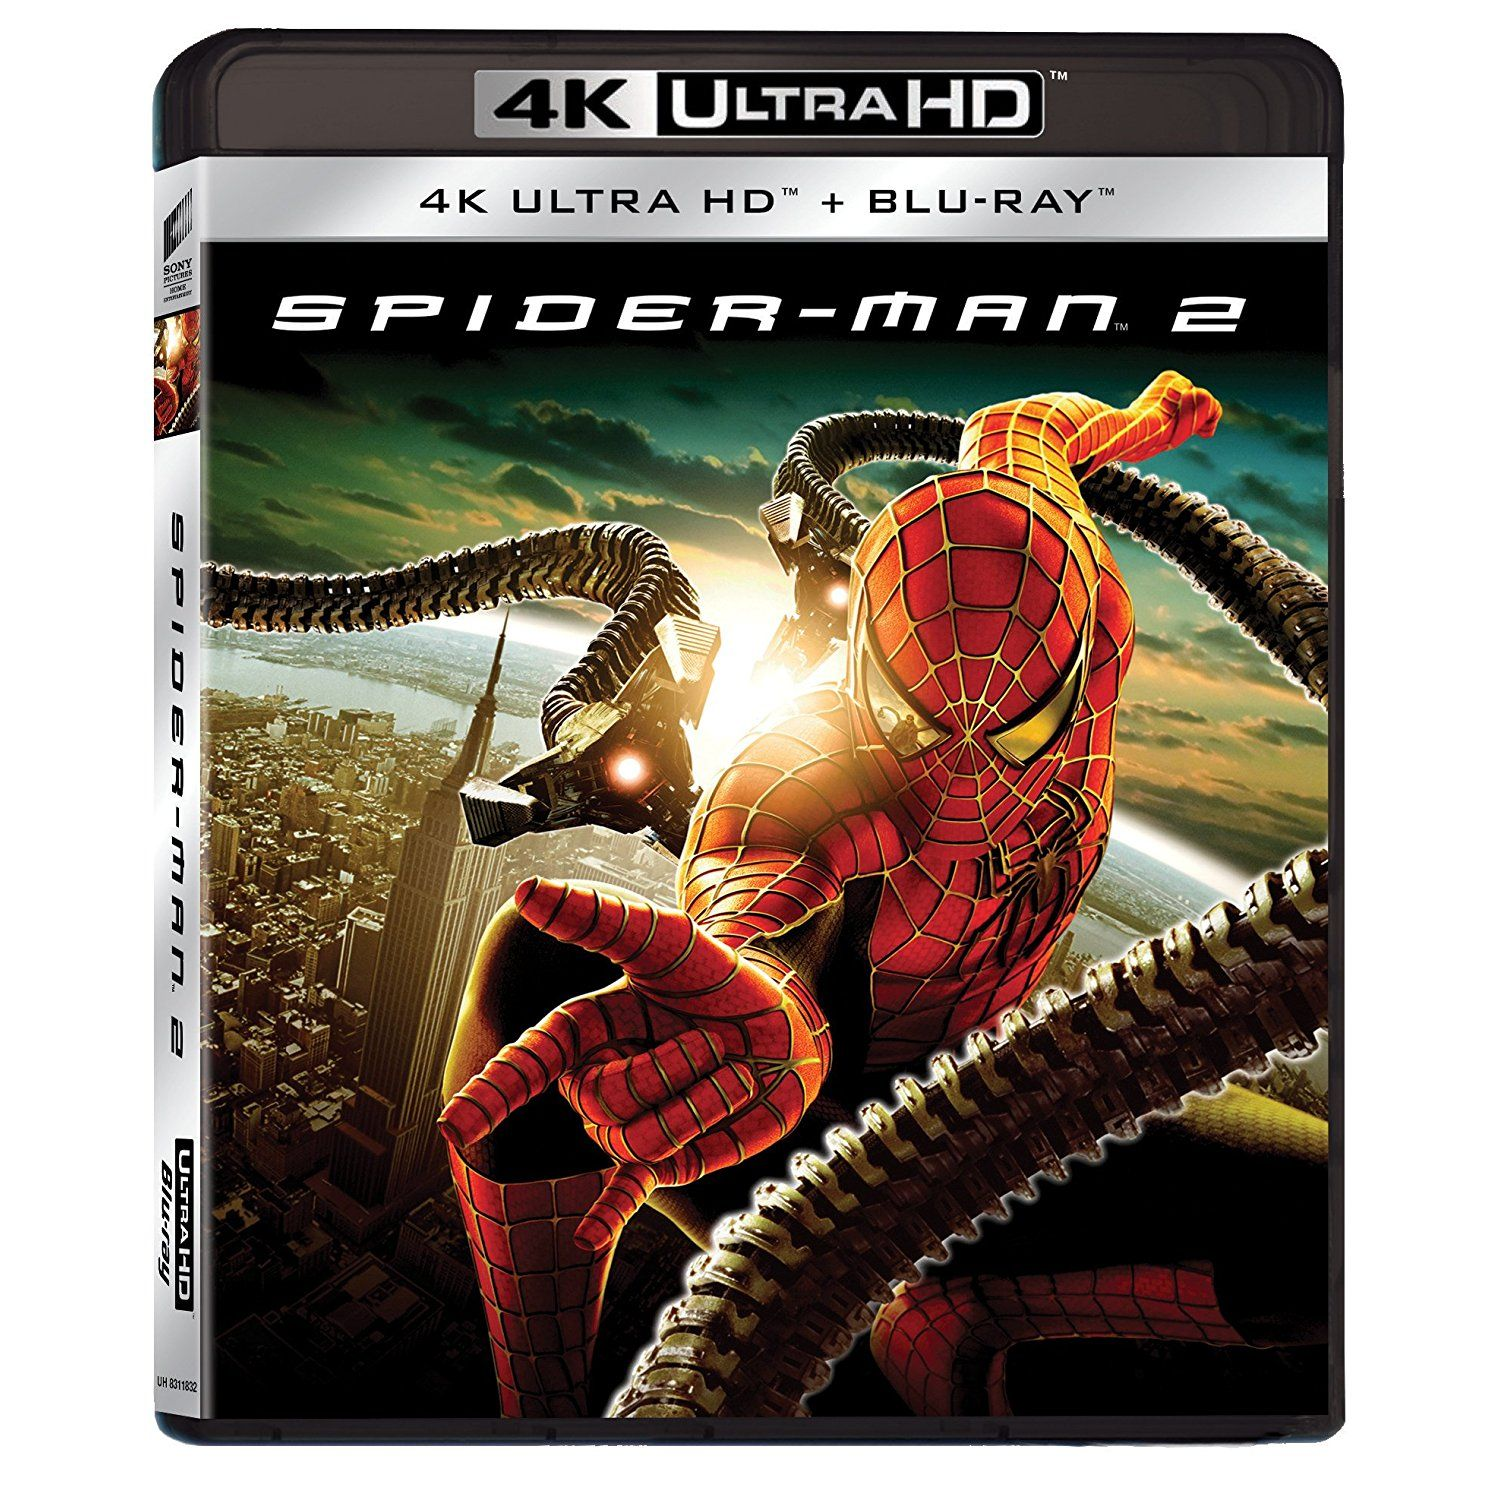 spider man 2 4k 2d 4k uhd blu ray blu ray 2d hd. Black Bedroom Furniture Sets. Home Design Ideas